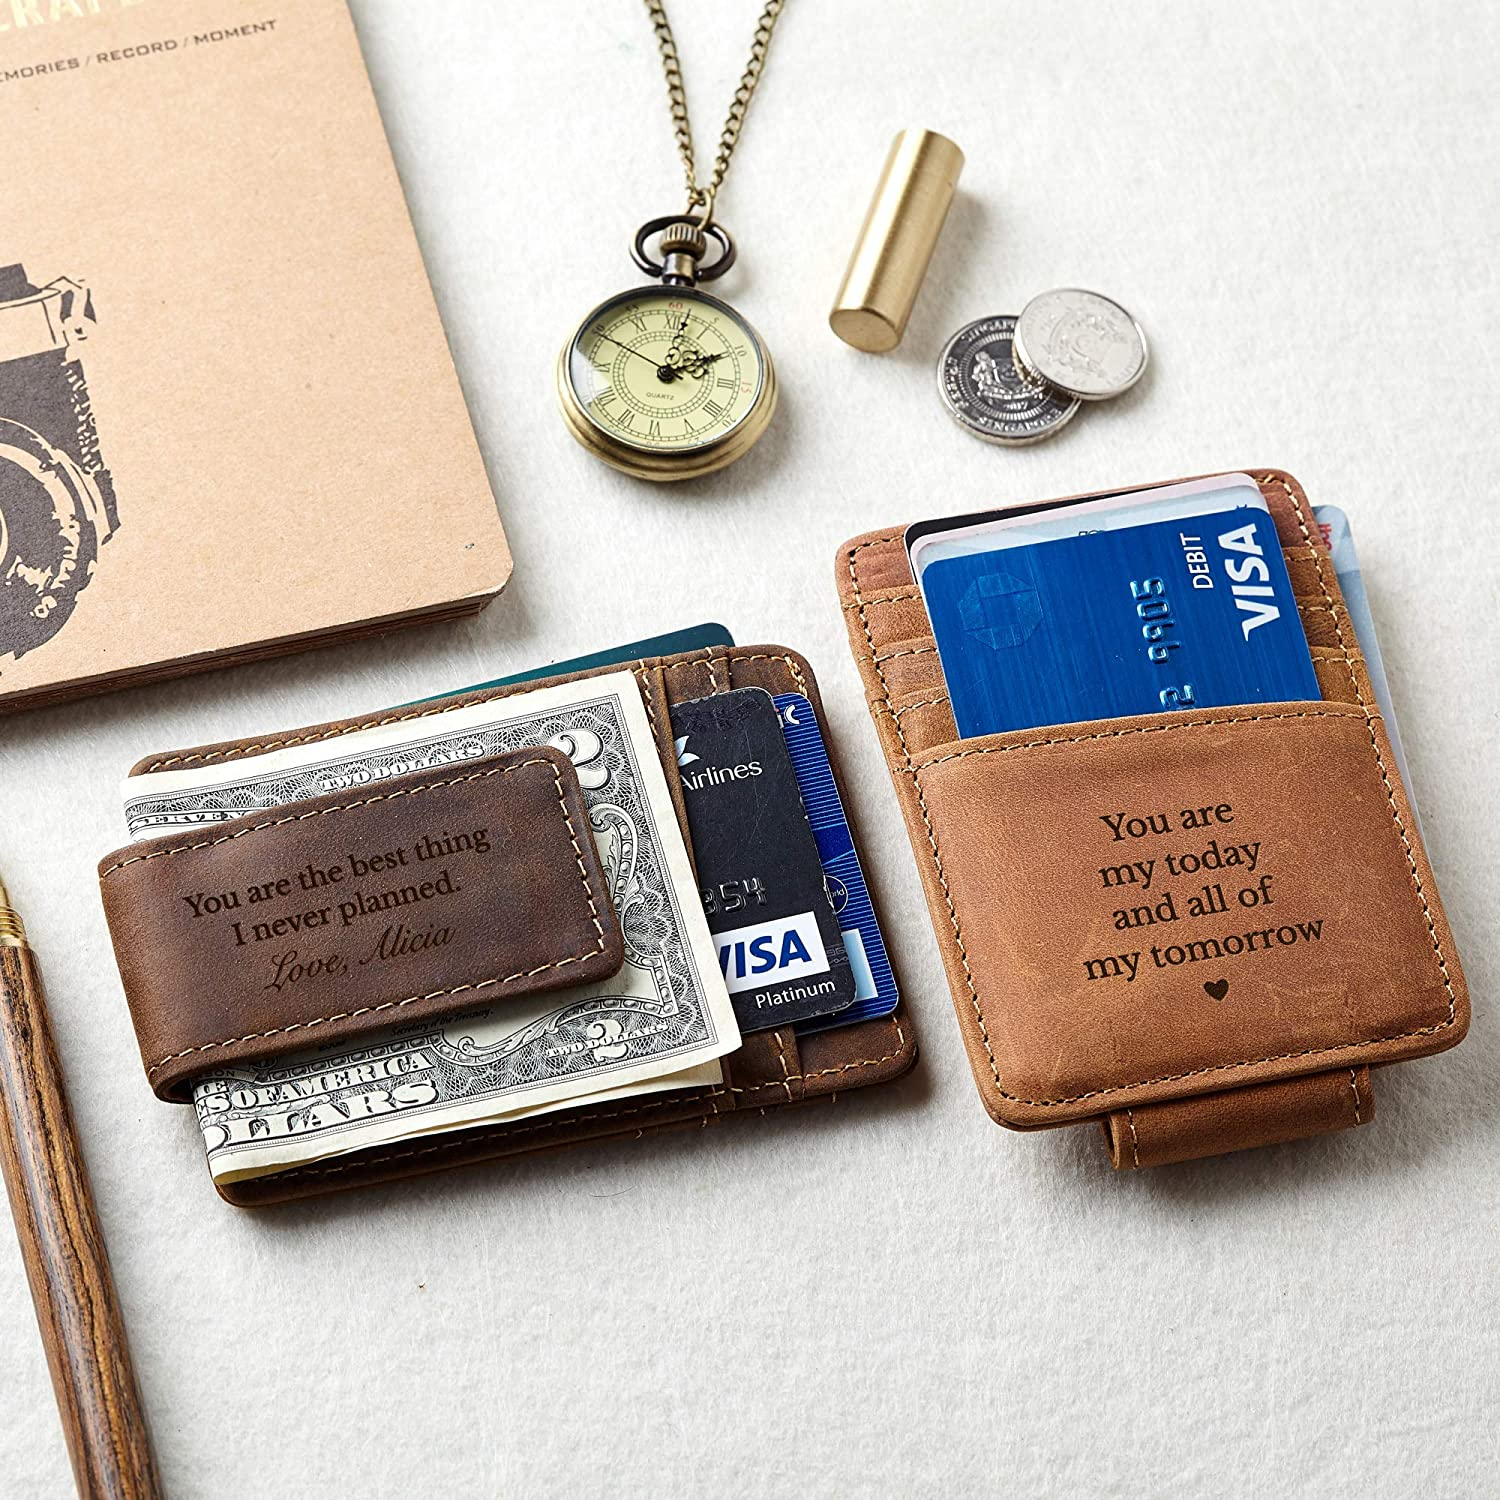 Engraved Money Clip With Magnet Personalized Wallets For Men Slim Wallet With Message Magnetic Money Clip Personalize Money Clip Wallet Credit Card Holder With Money Clip